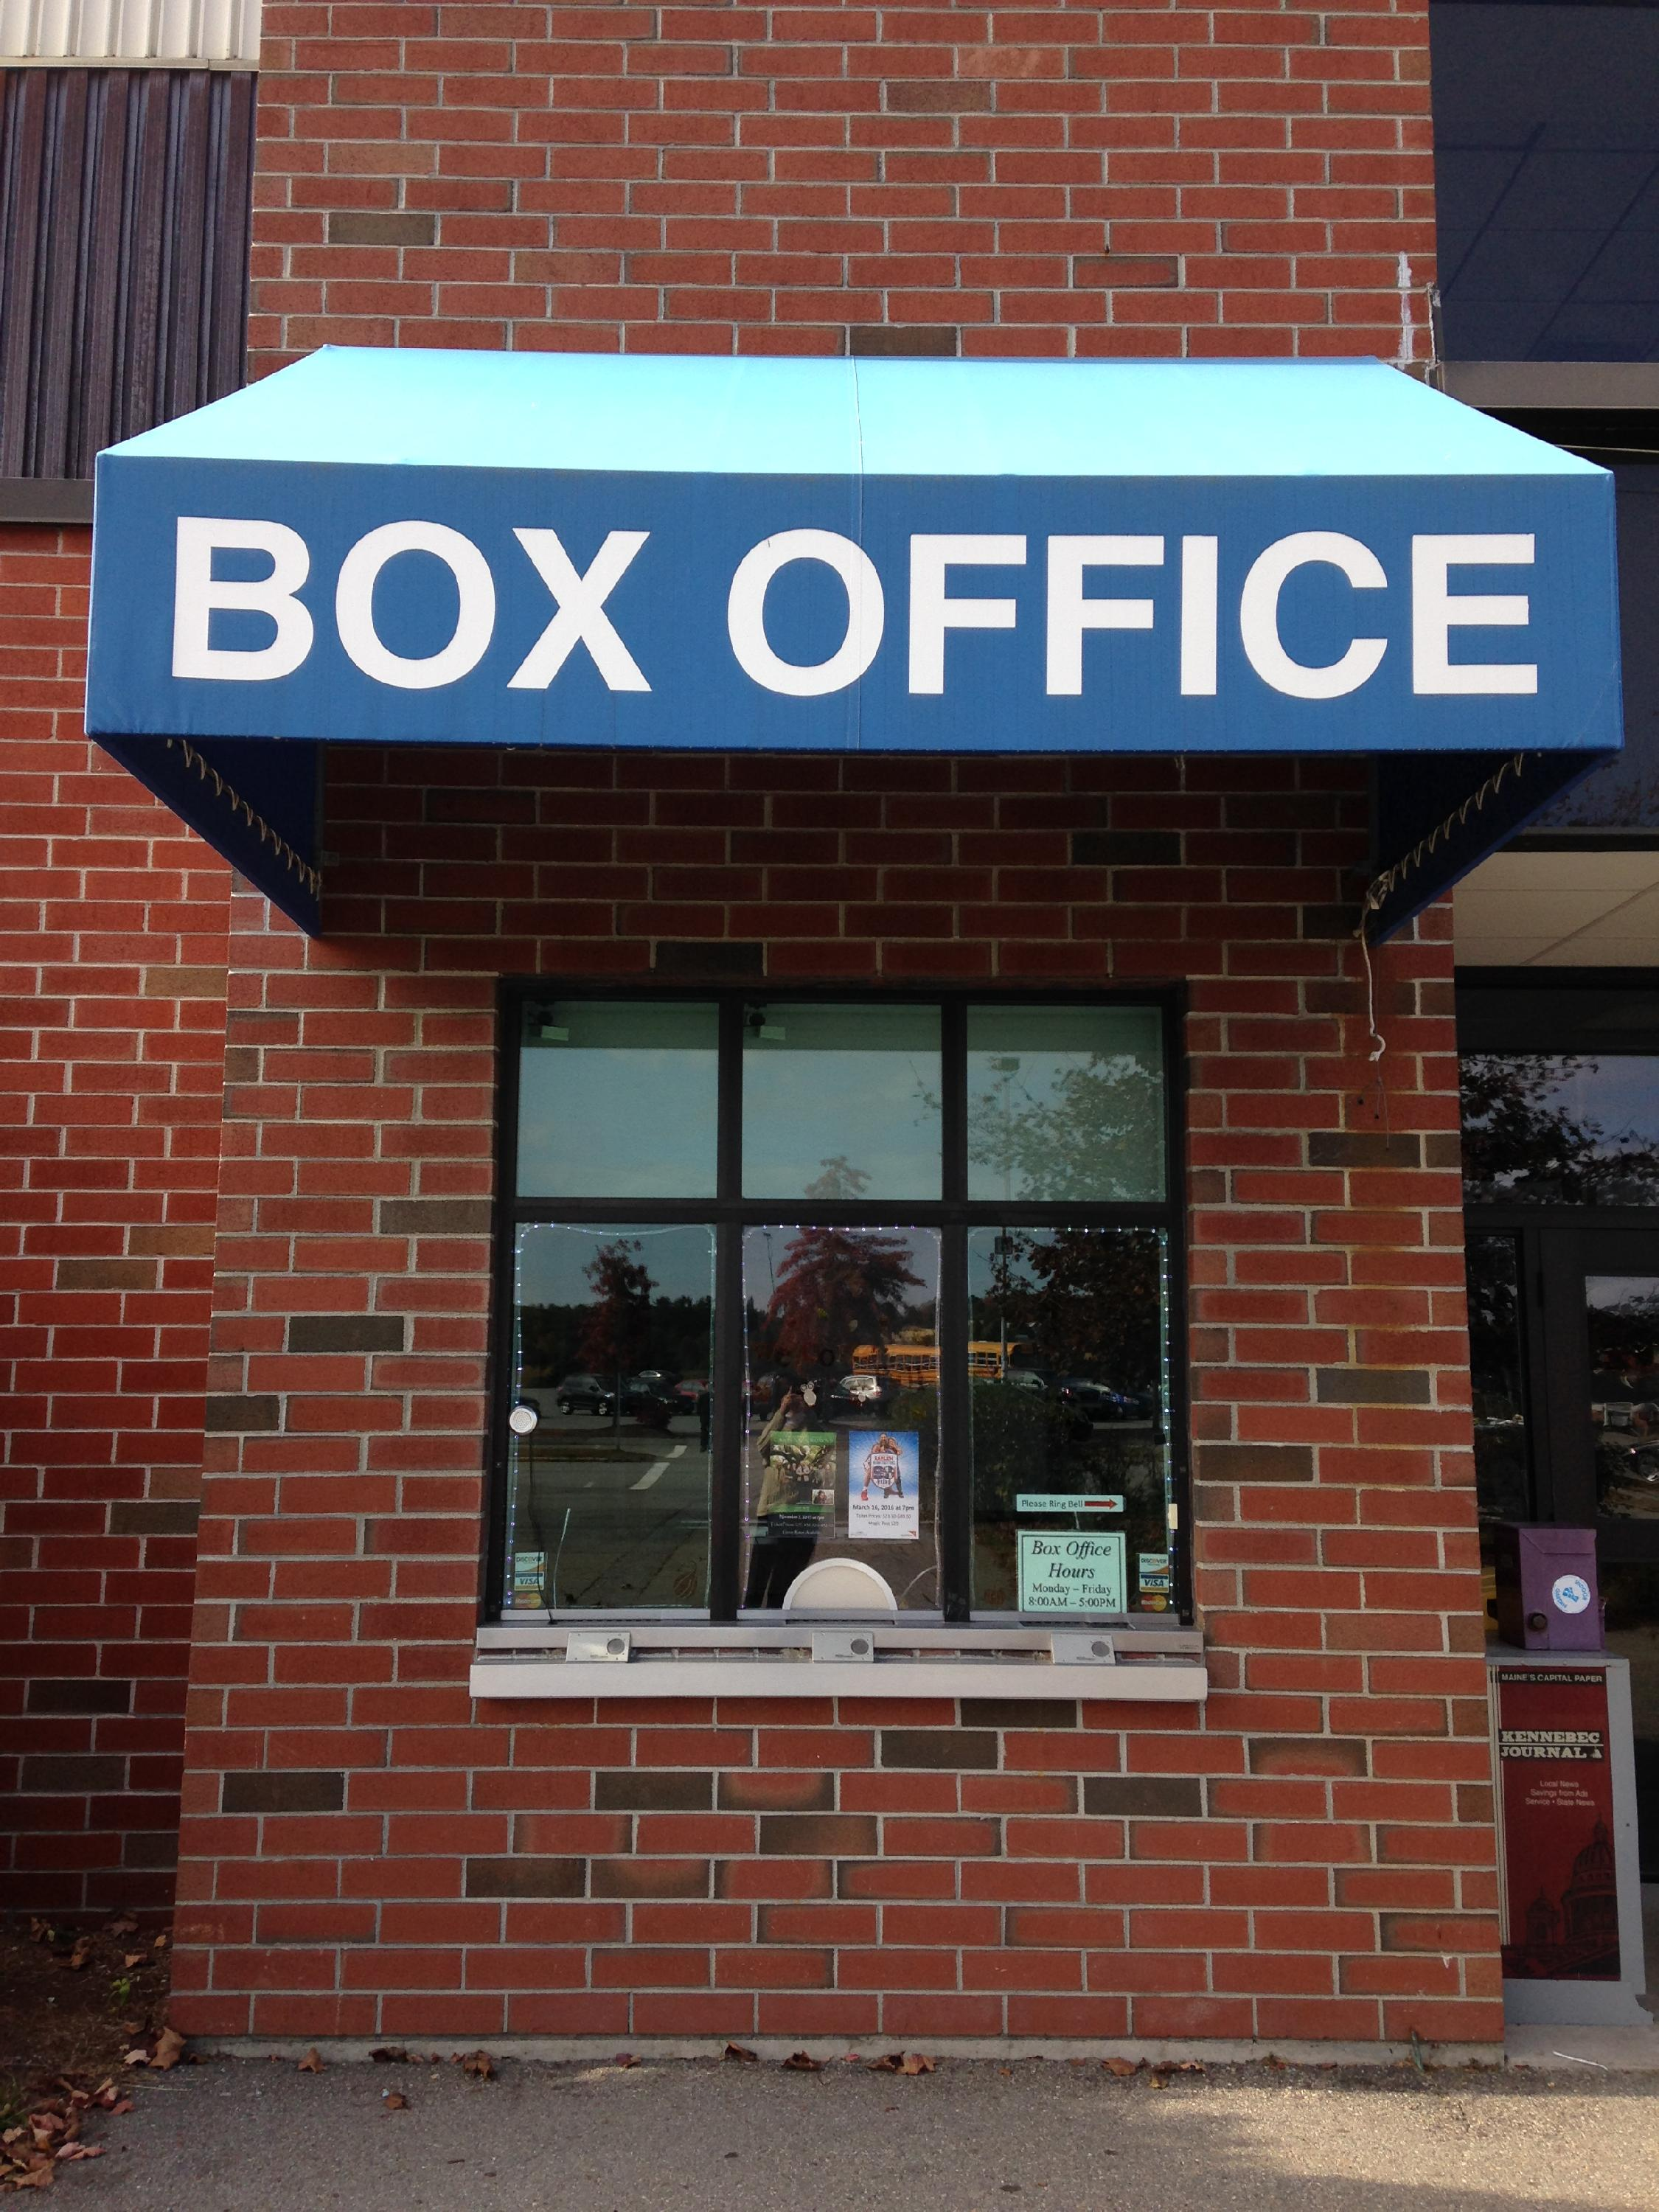 Box Office amp Ticket InformationThe box office is located to the